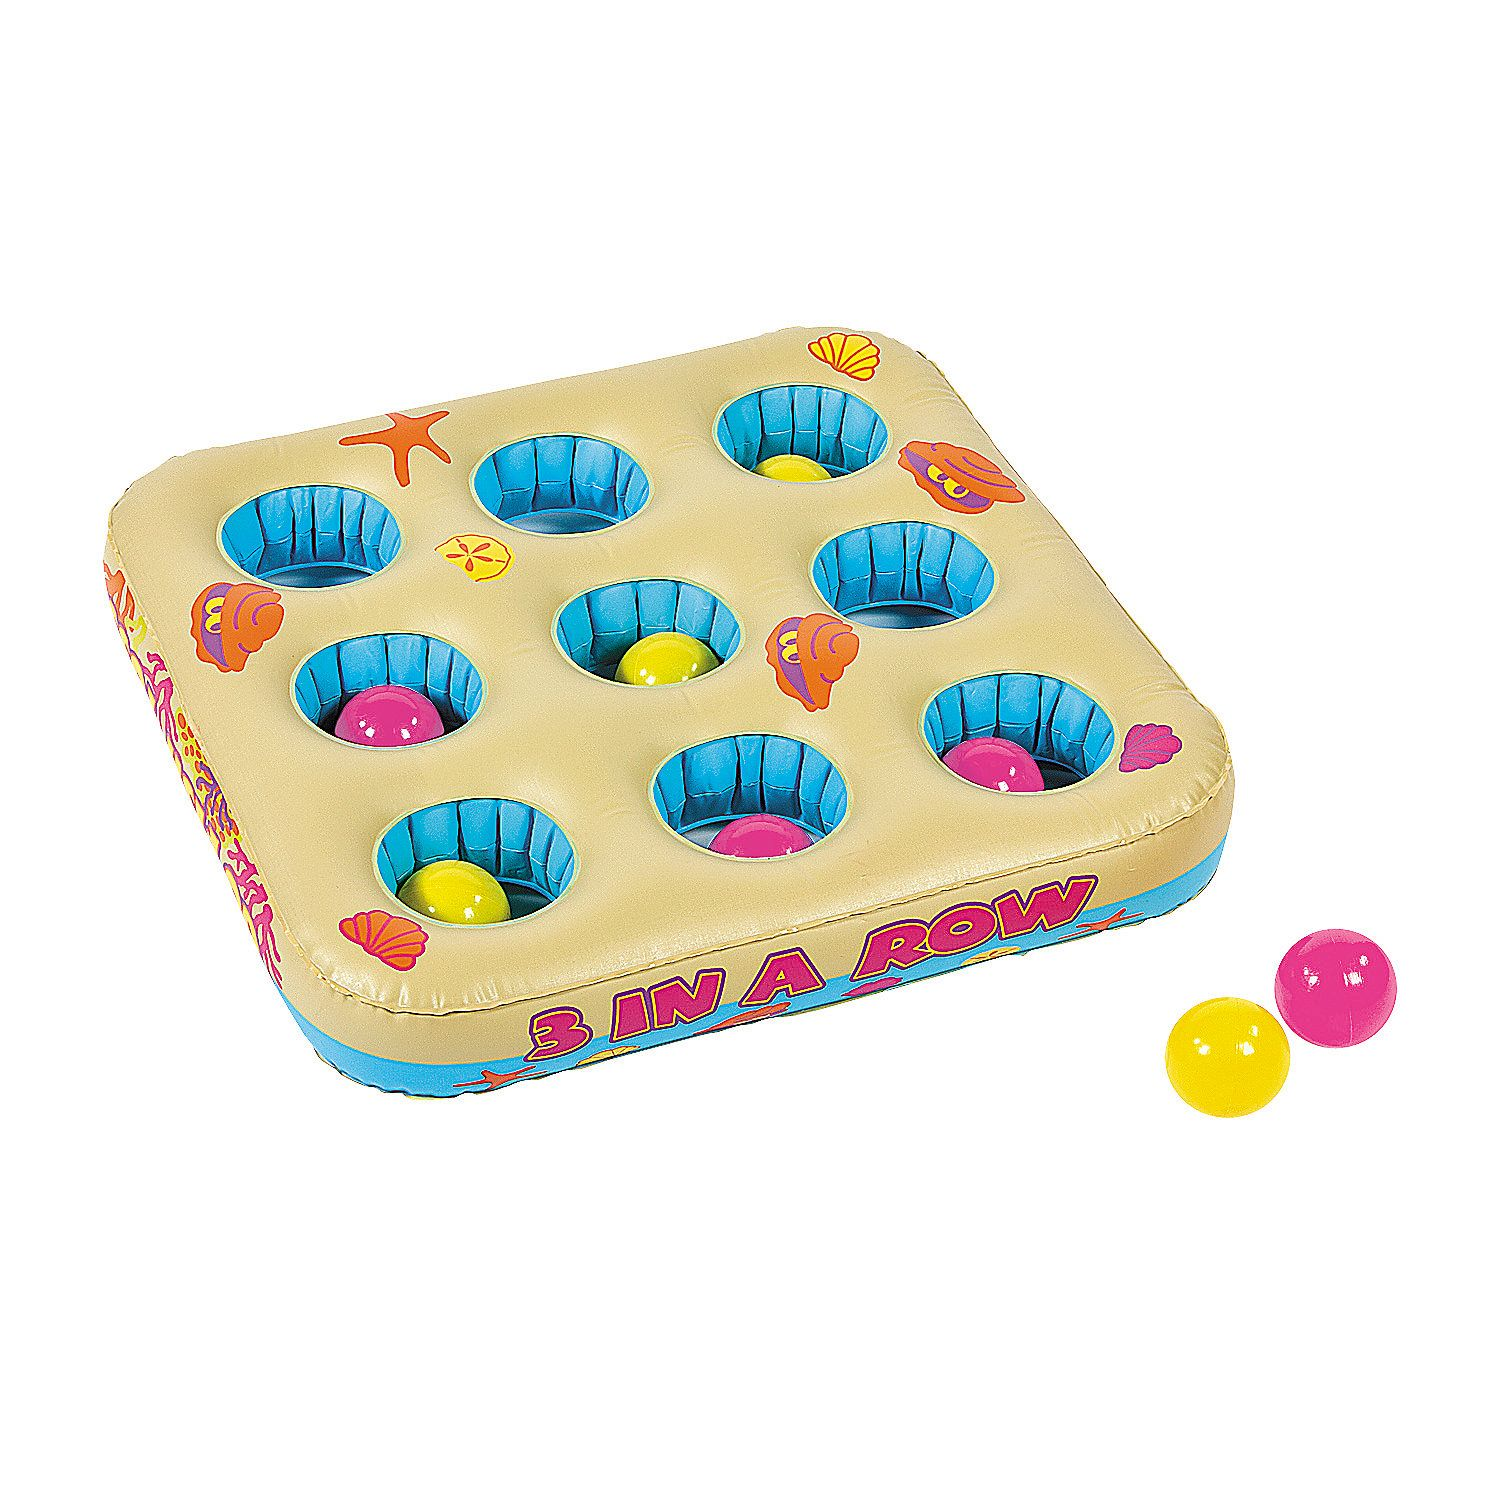 Luau Toys Games & Novelties Novelties Birthday Party Games